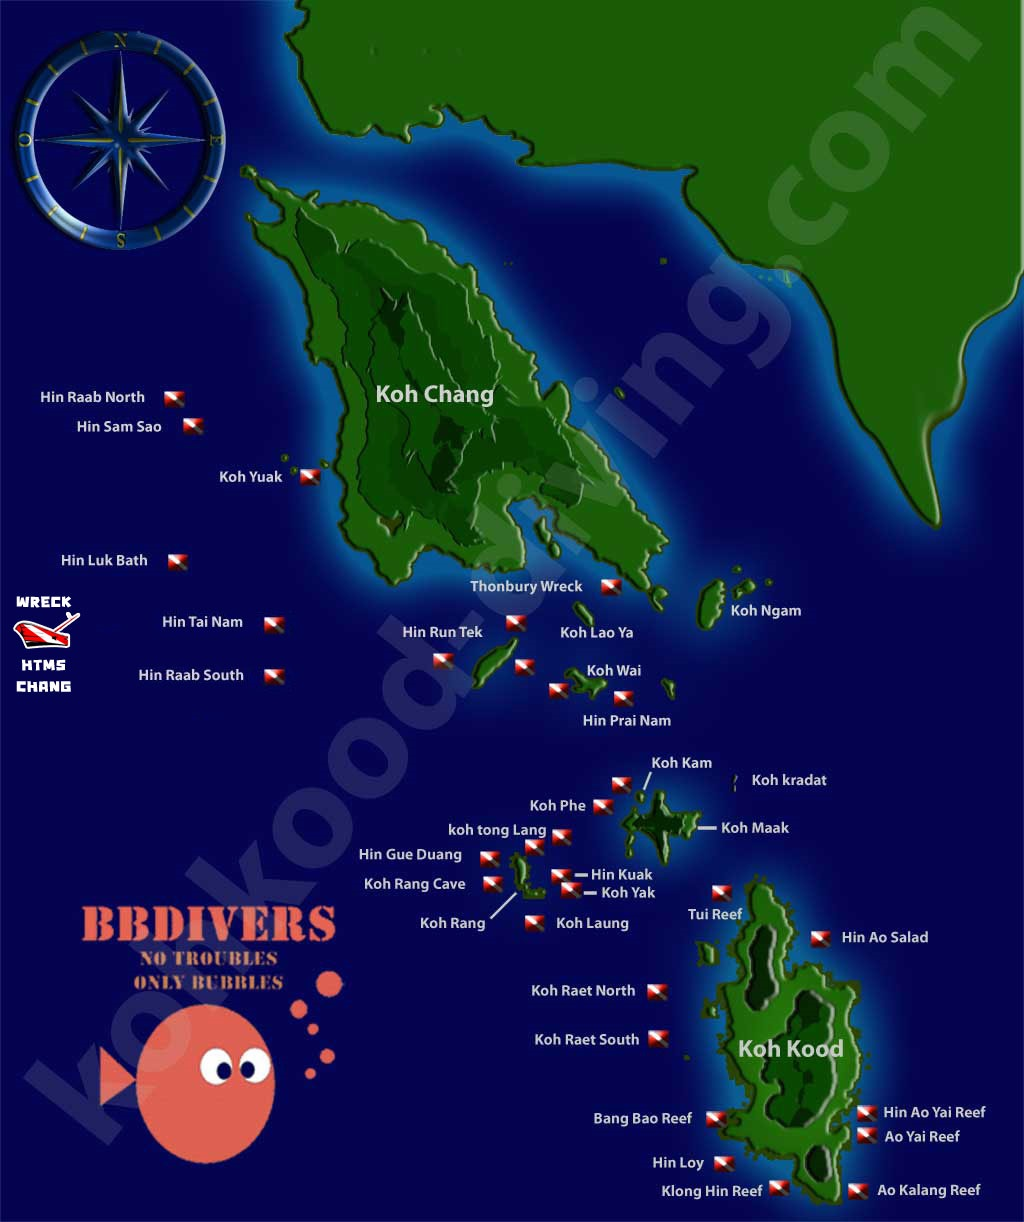 BB Divers Koh Chang - Dive sites